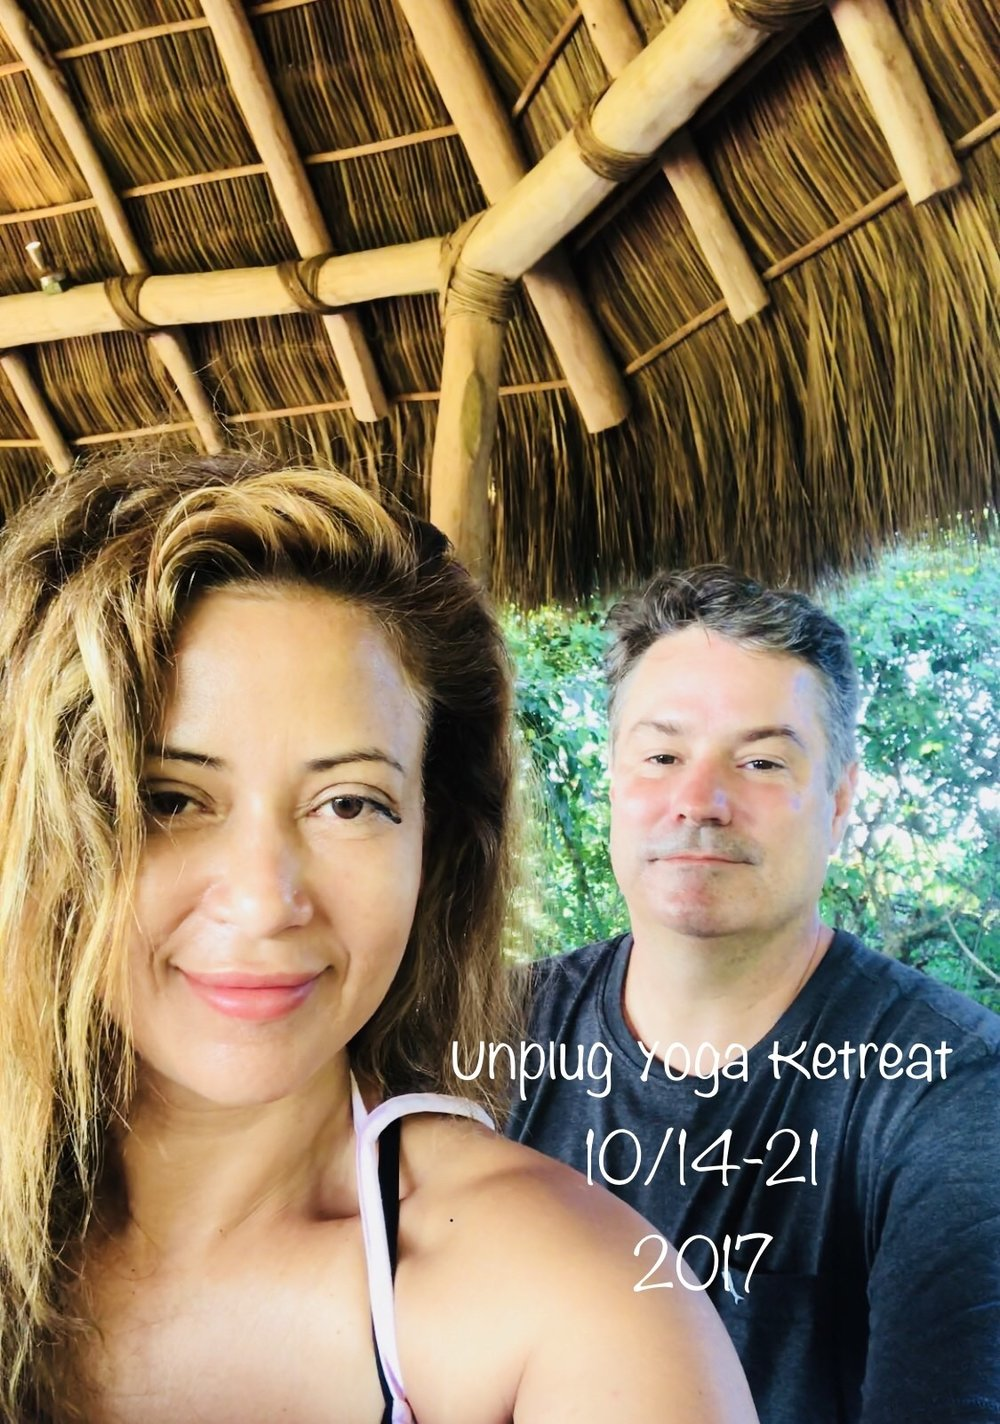 Such an incredible time on this year's retreat. WE ARE HAPPY TO HAVE SPENT 7 DAYS WITH SUCH A GREAT GROUP OF YOGIS.    OUR NEXT RETREAT PROMISES TO BE SPECTACULAR! WE ARE GOING TO GREECE !!!!! WOULD YOU JOIN US.. COME, UNPLUG BE REFRESHED BE MADE ALL NEW    JEFF & ALEX